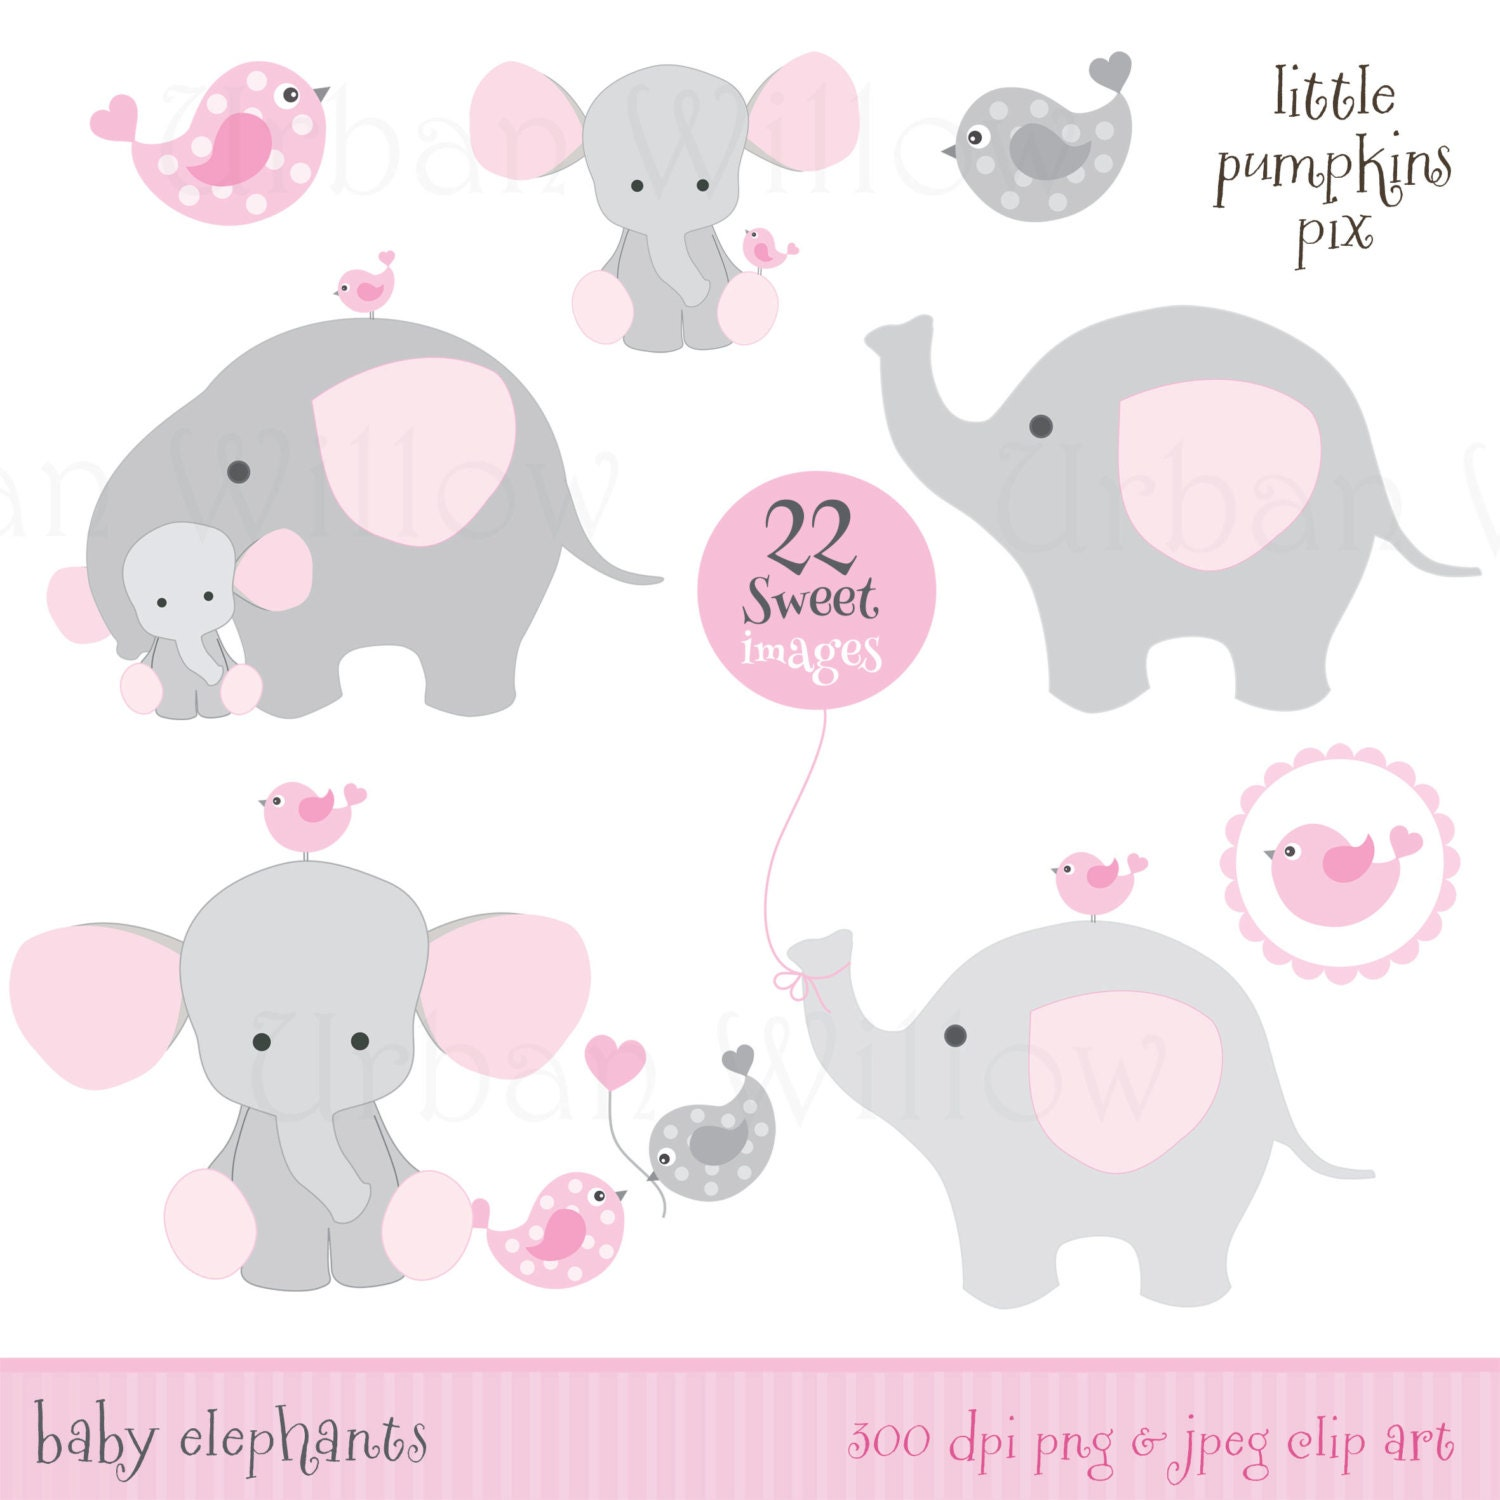 Baby elephants Cute Clipart elephant commercial use OK